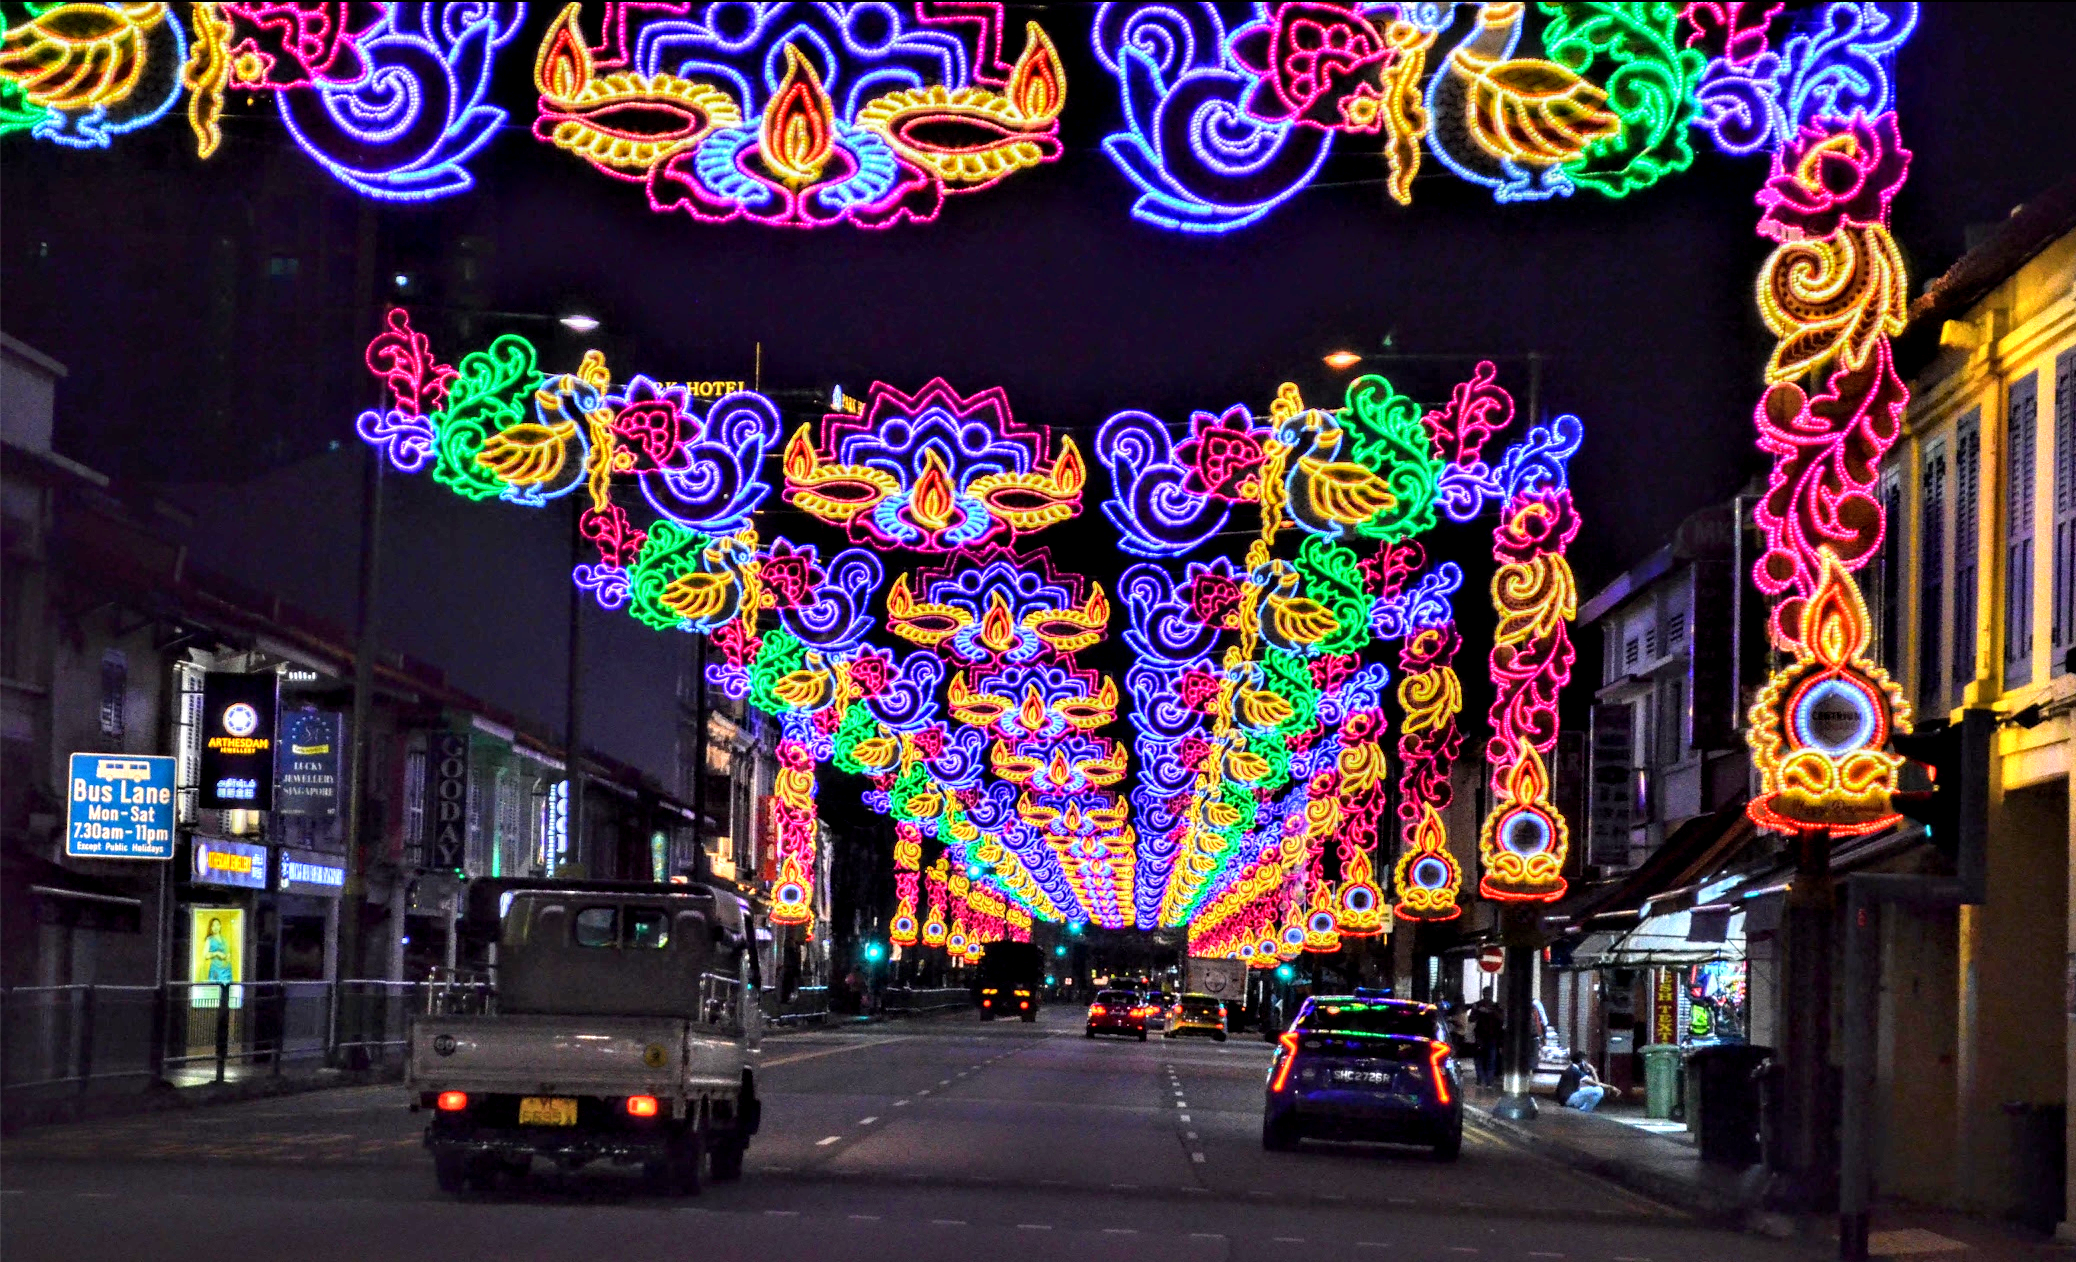 Little India's commercial, religious, heritage and cultural organisations are diverse, making it as colourful as the Deepavali light-up it puts up each year. Photo: Connected to India